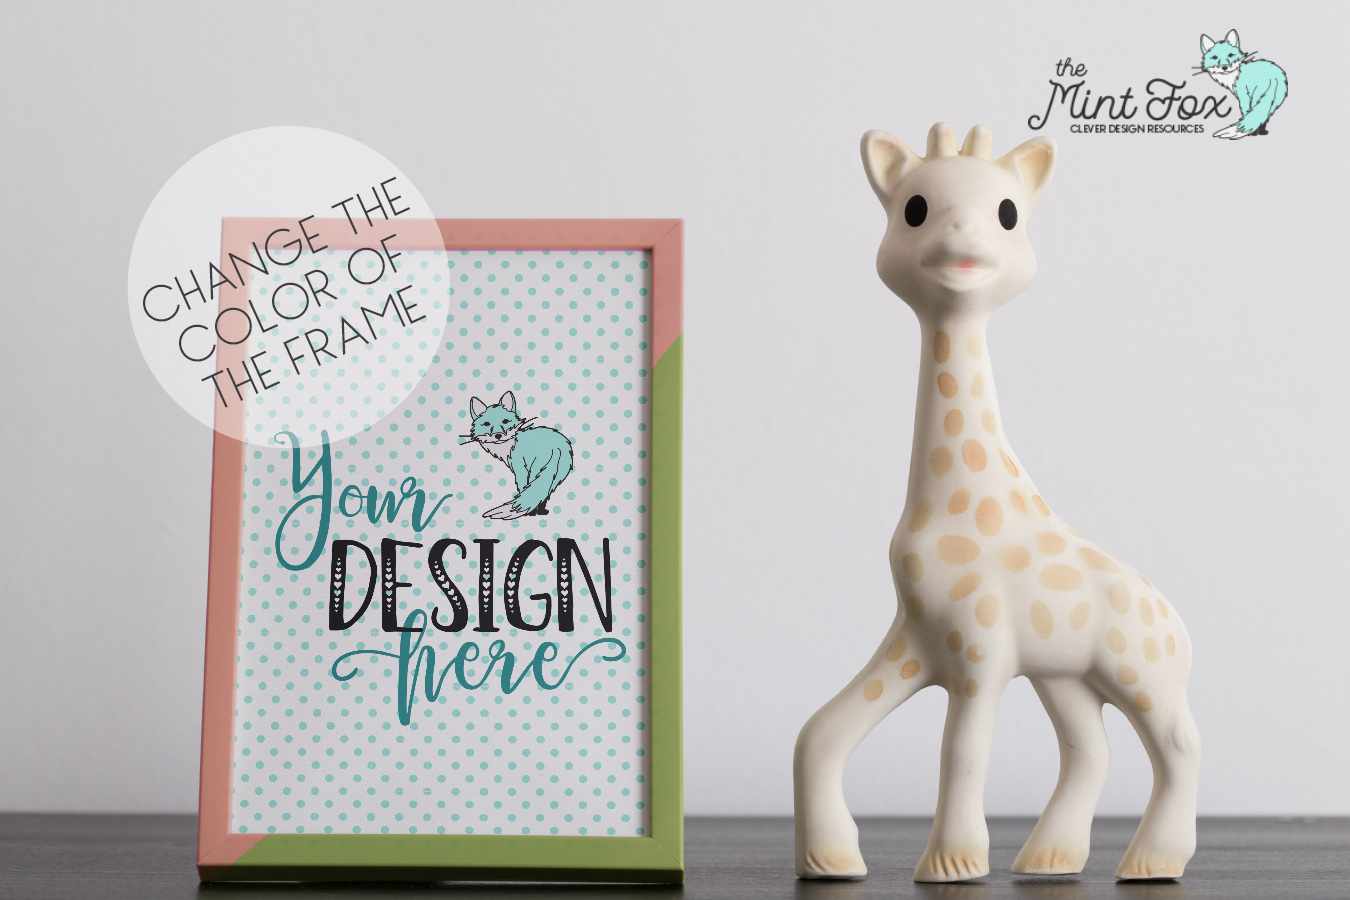 Children Photo Frame Mockup with Giraffe example image 3